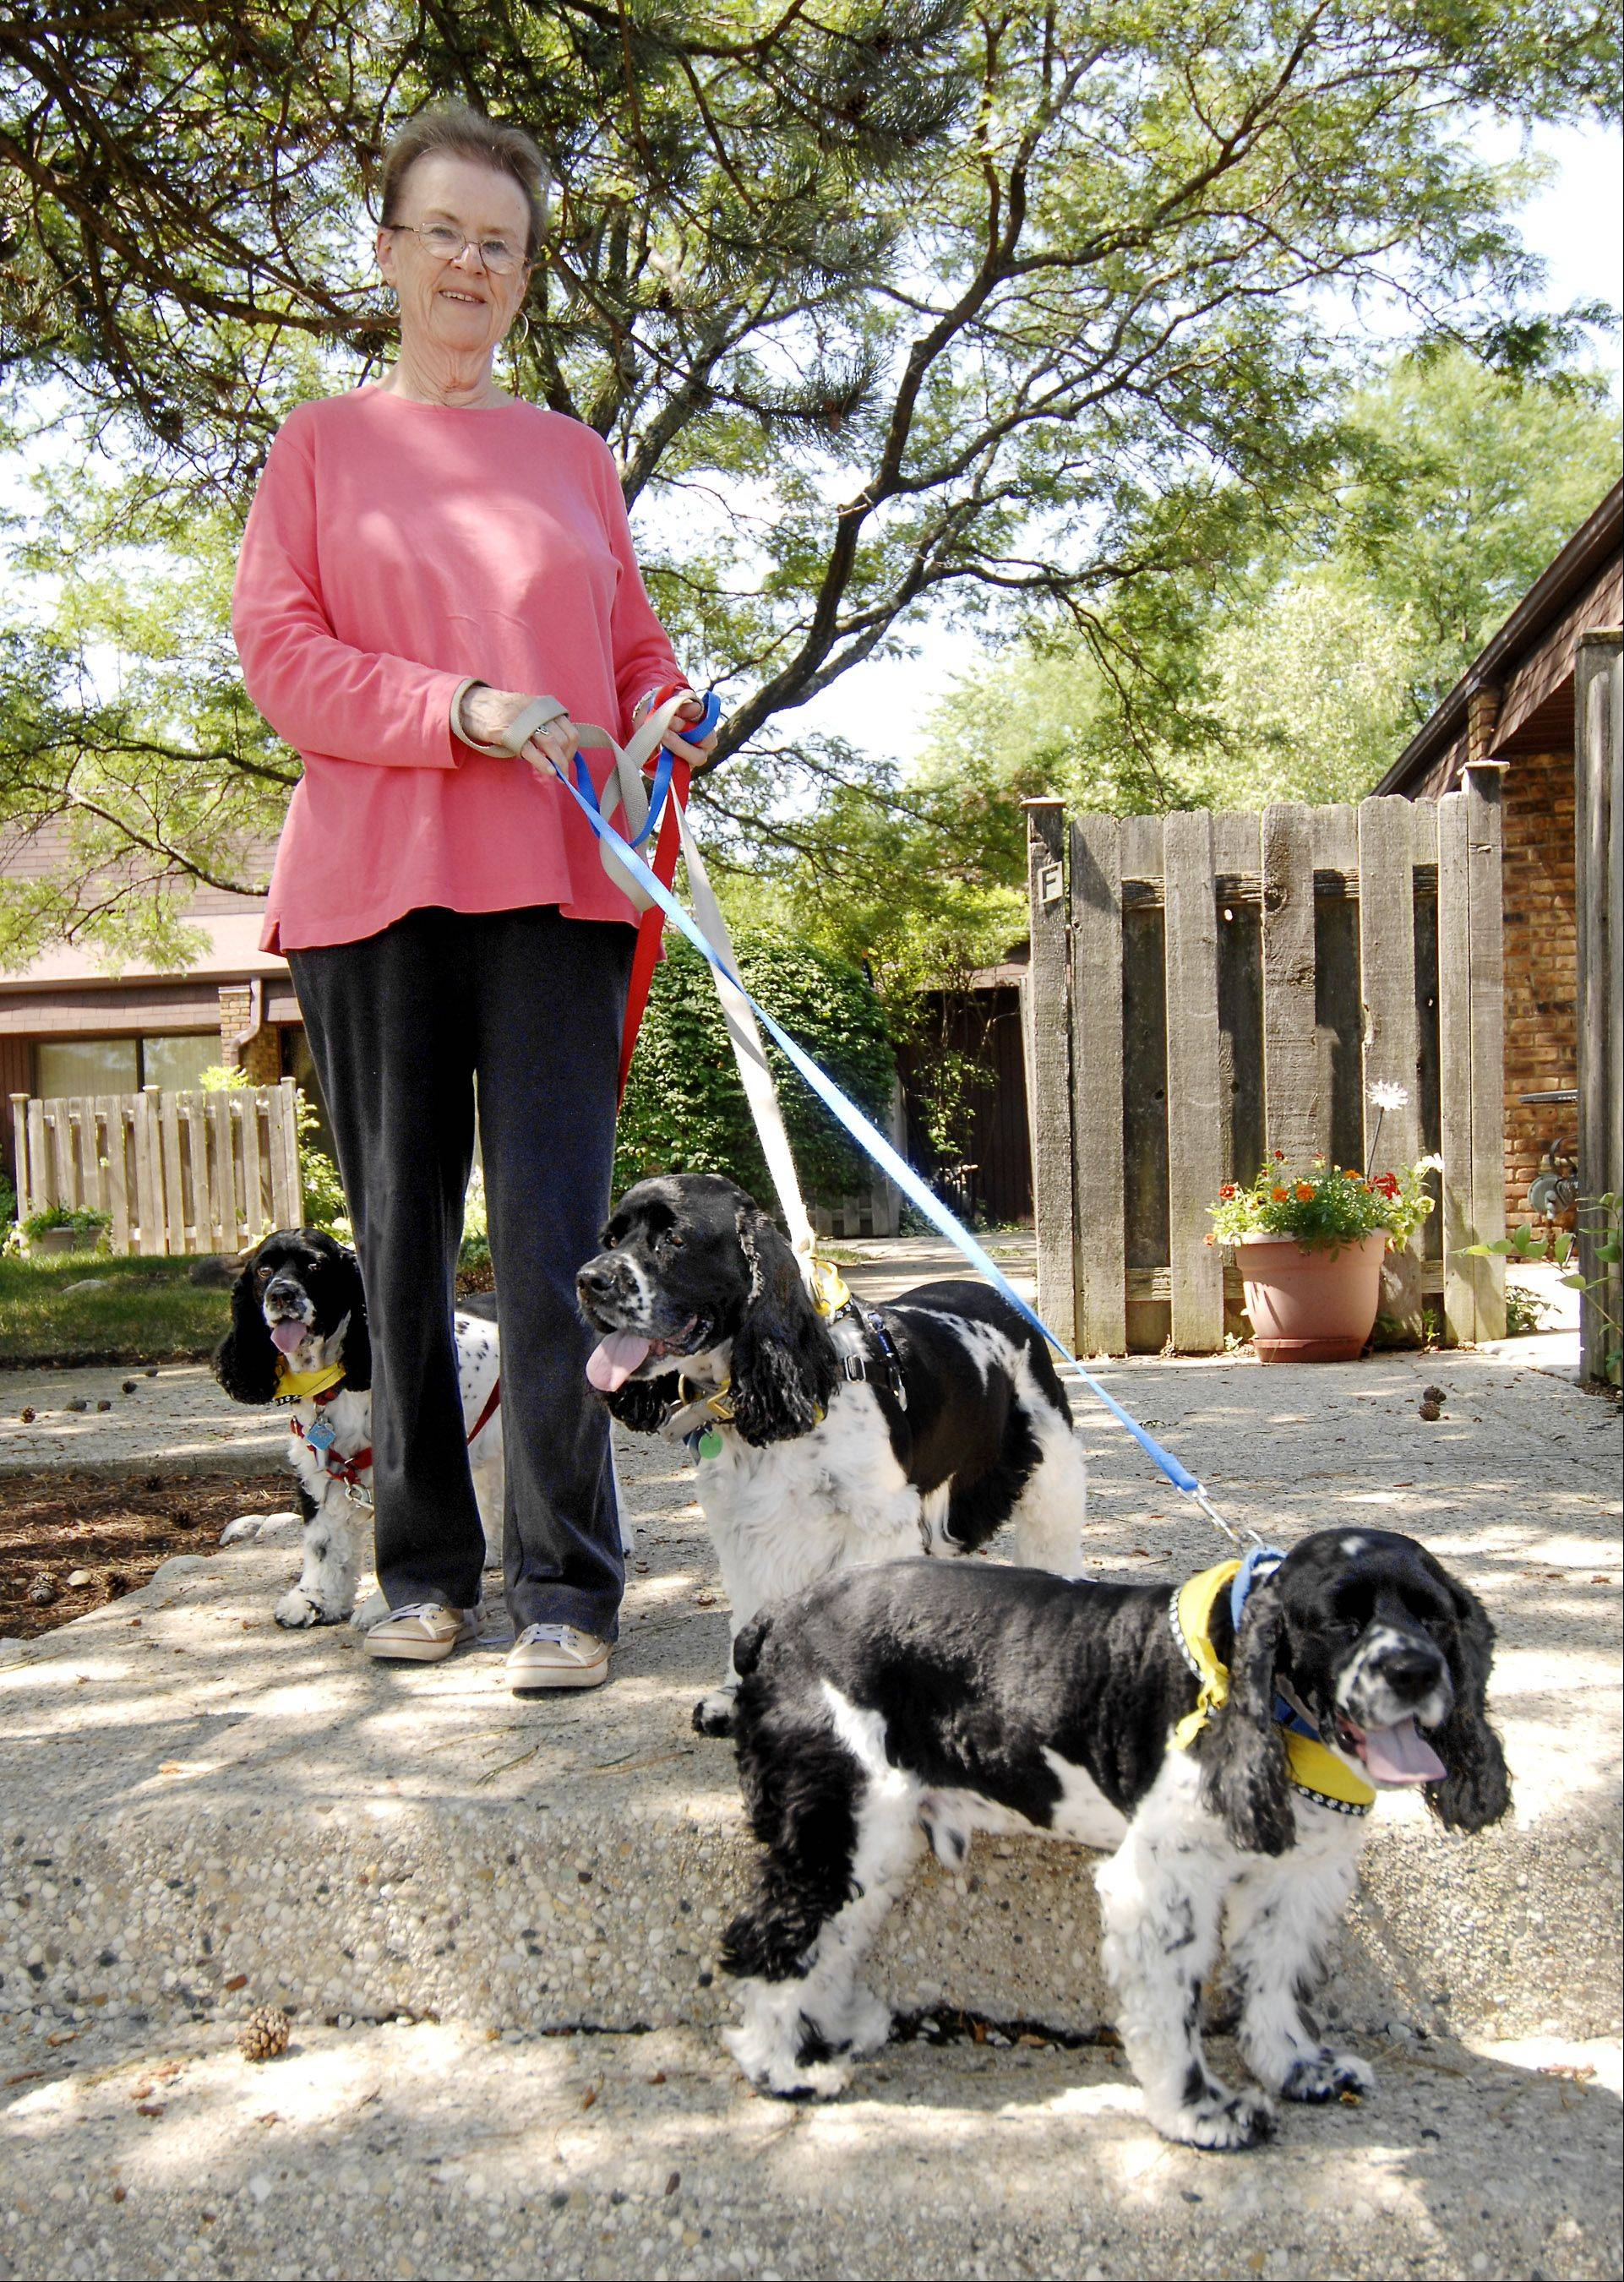 Karen Schlabach is the owner of three black-and-white cocker spaniels, Romeo, Chipper and Cooper. Each dog has his own profile with hundreds of friends on the canine social network DoggySpace.